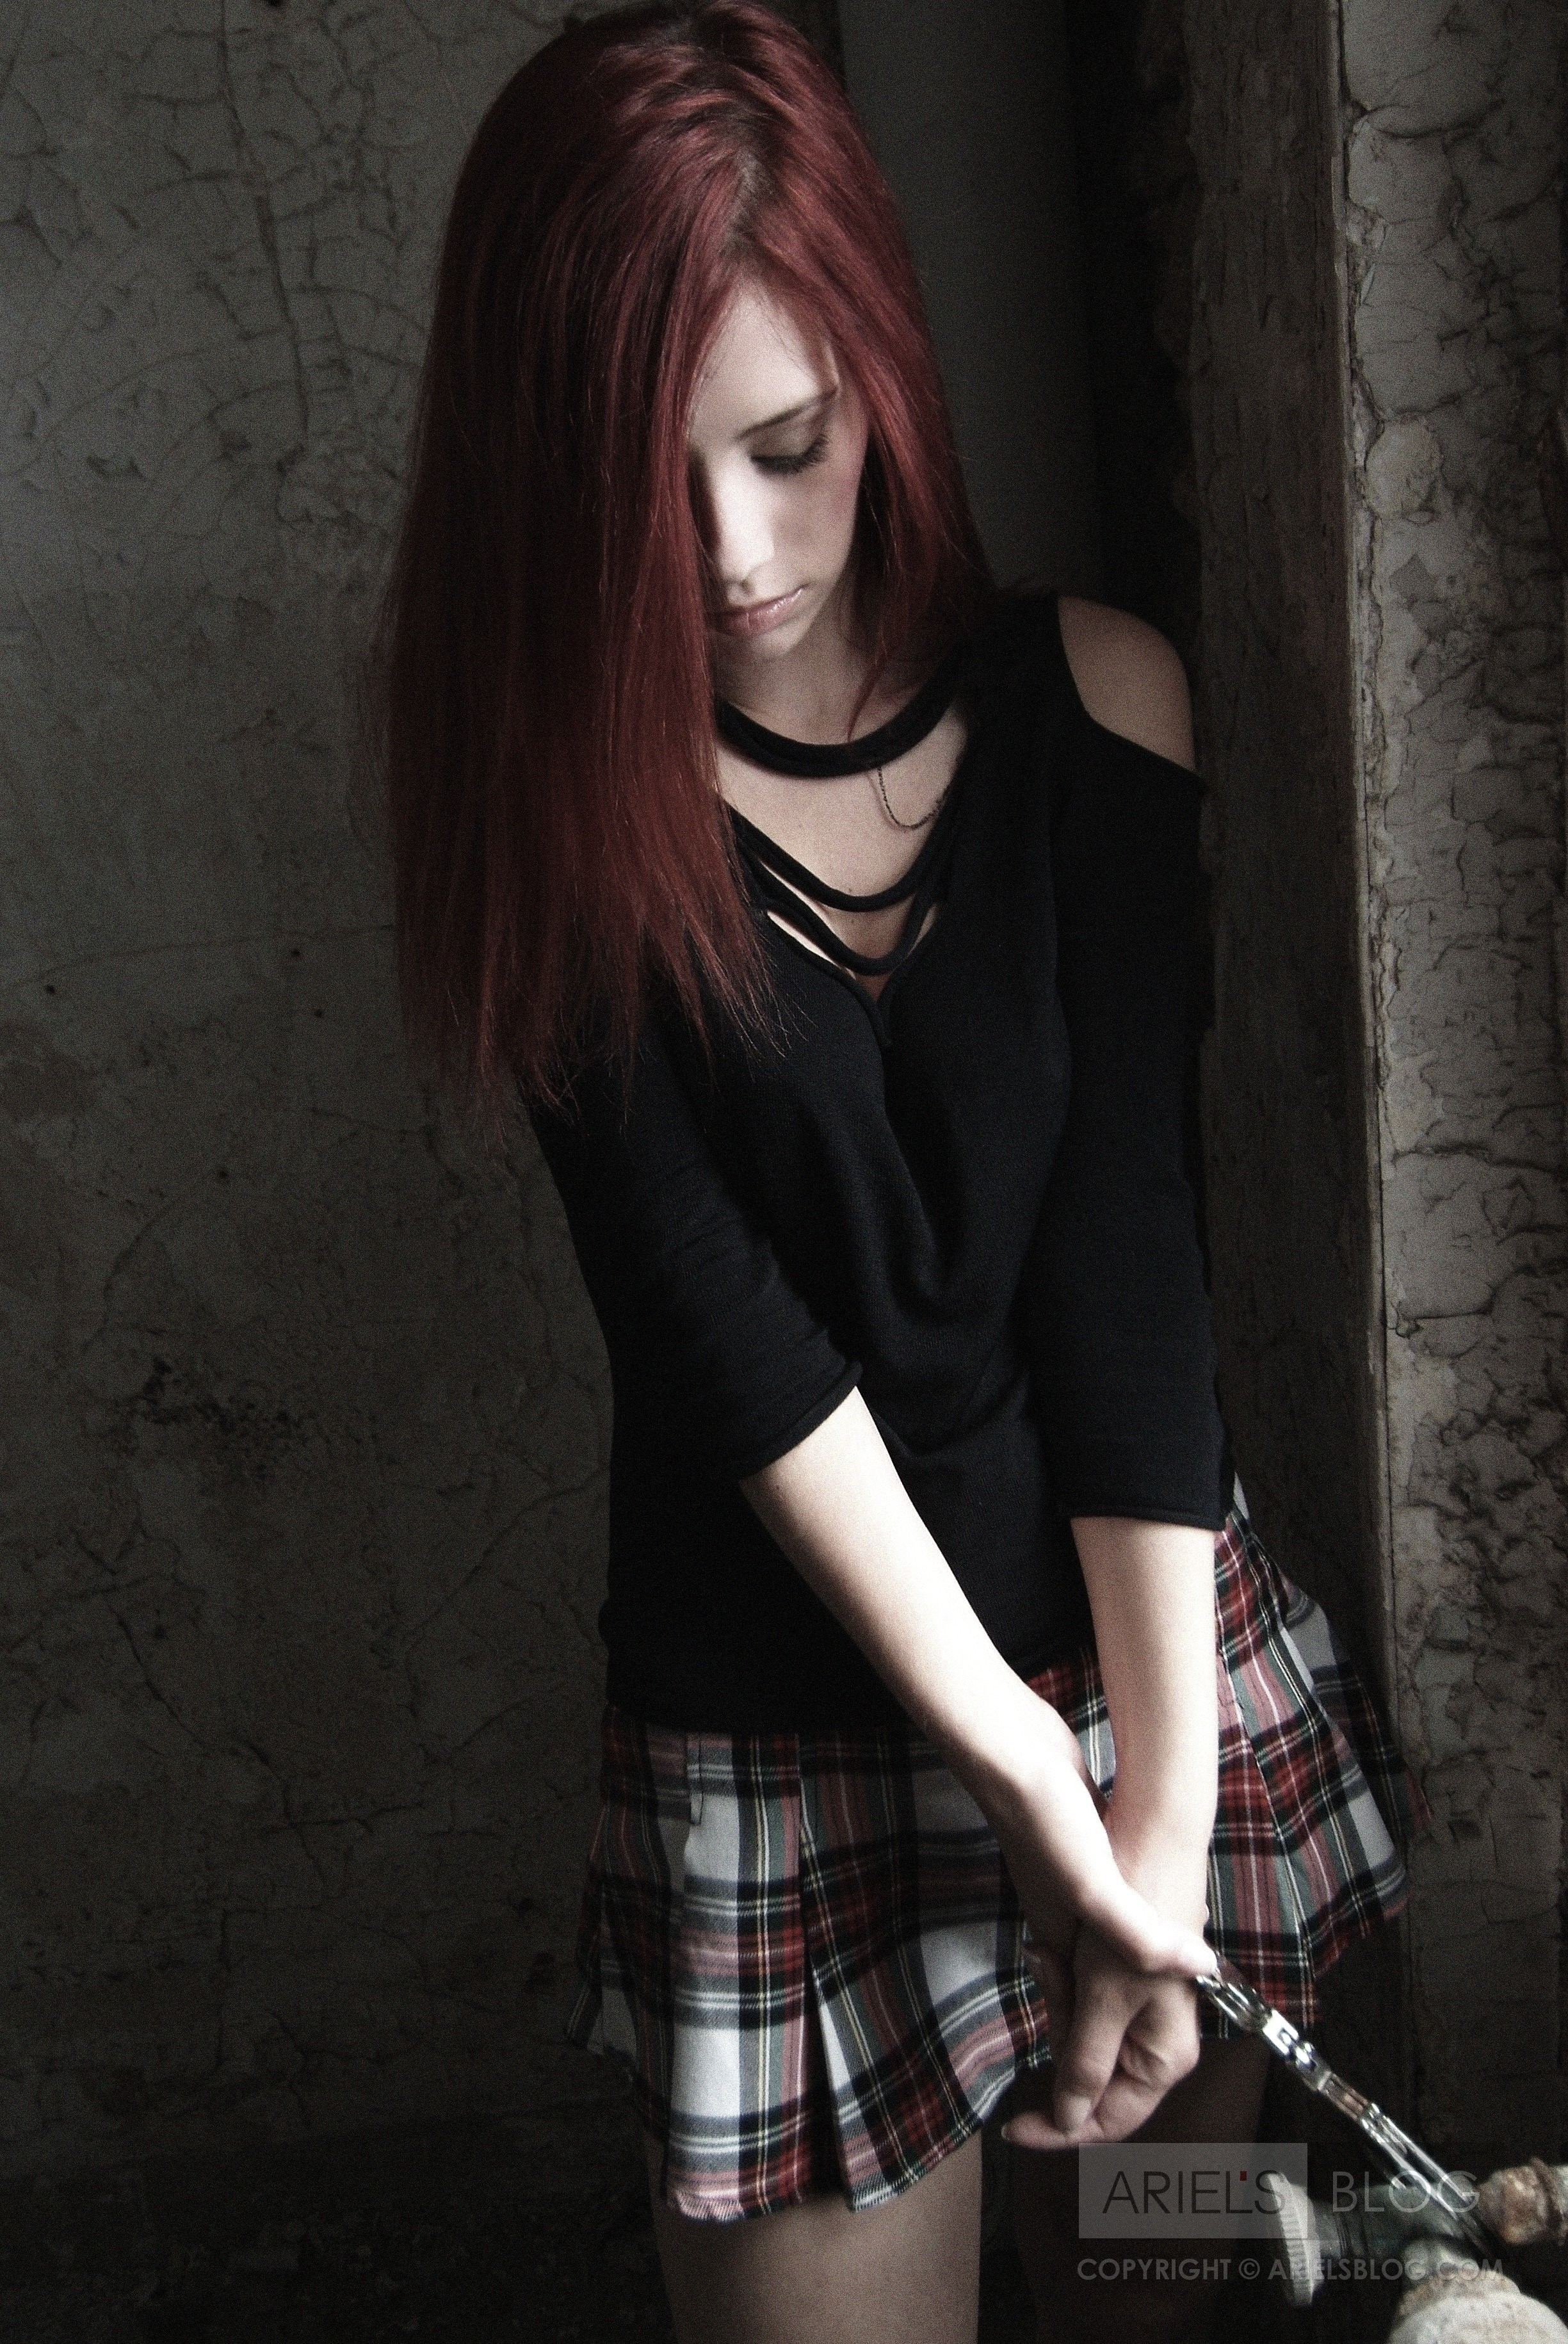 woman redheads Gothic handcuffs HD Wallpaper